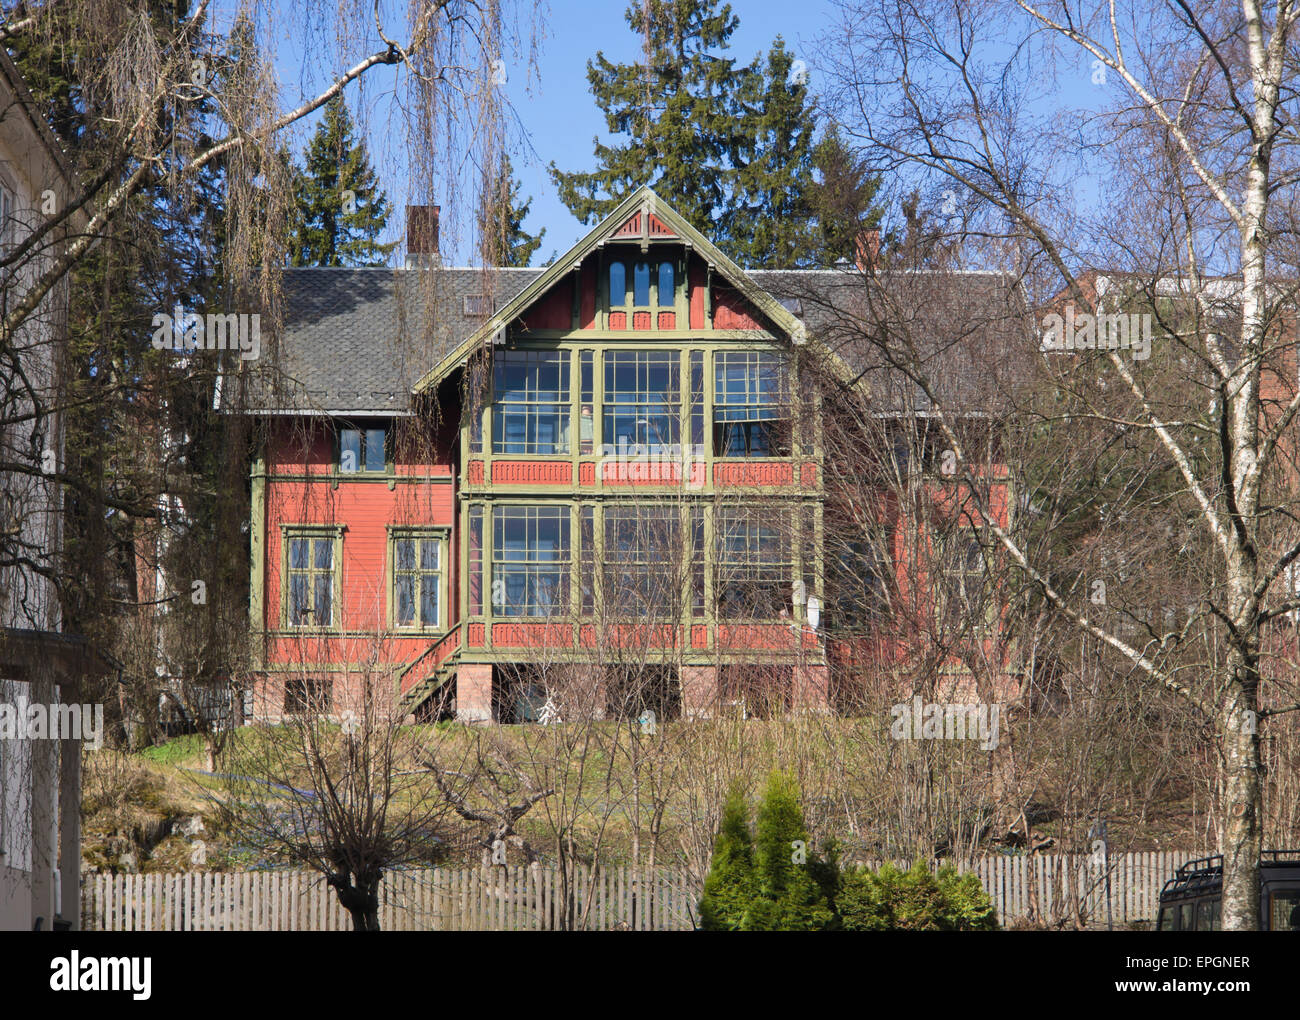 Large wood-framed turn of last century villa in the Ulleval district of Oslo Norway - Stock Image